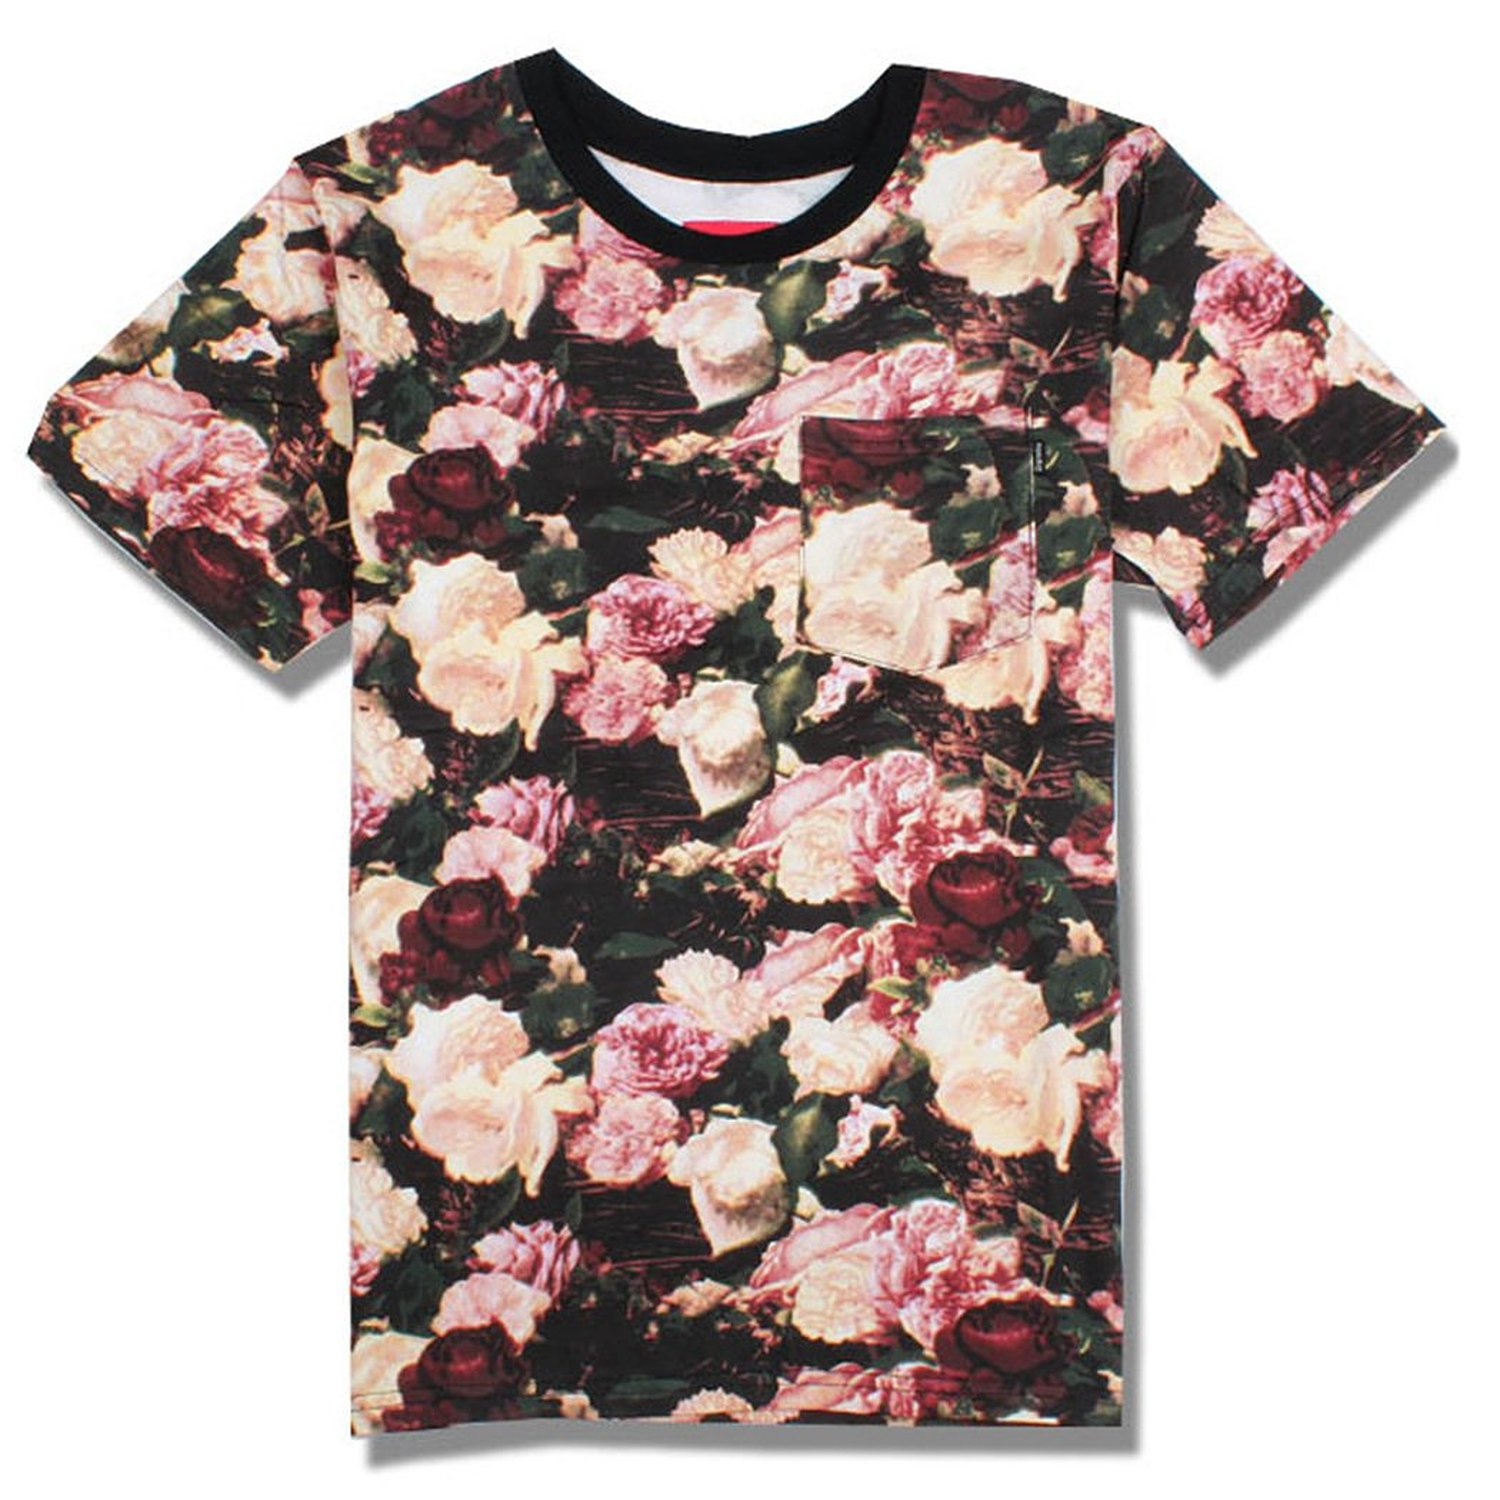 Women Rose Flower Print T Shirt (S) at Amazon Women's Clothing store: